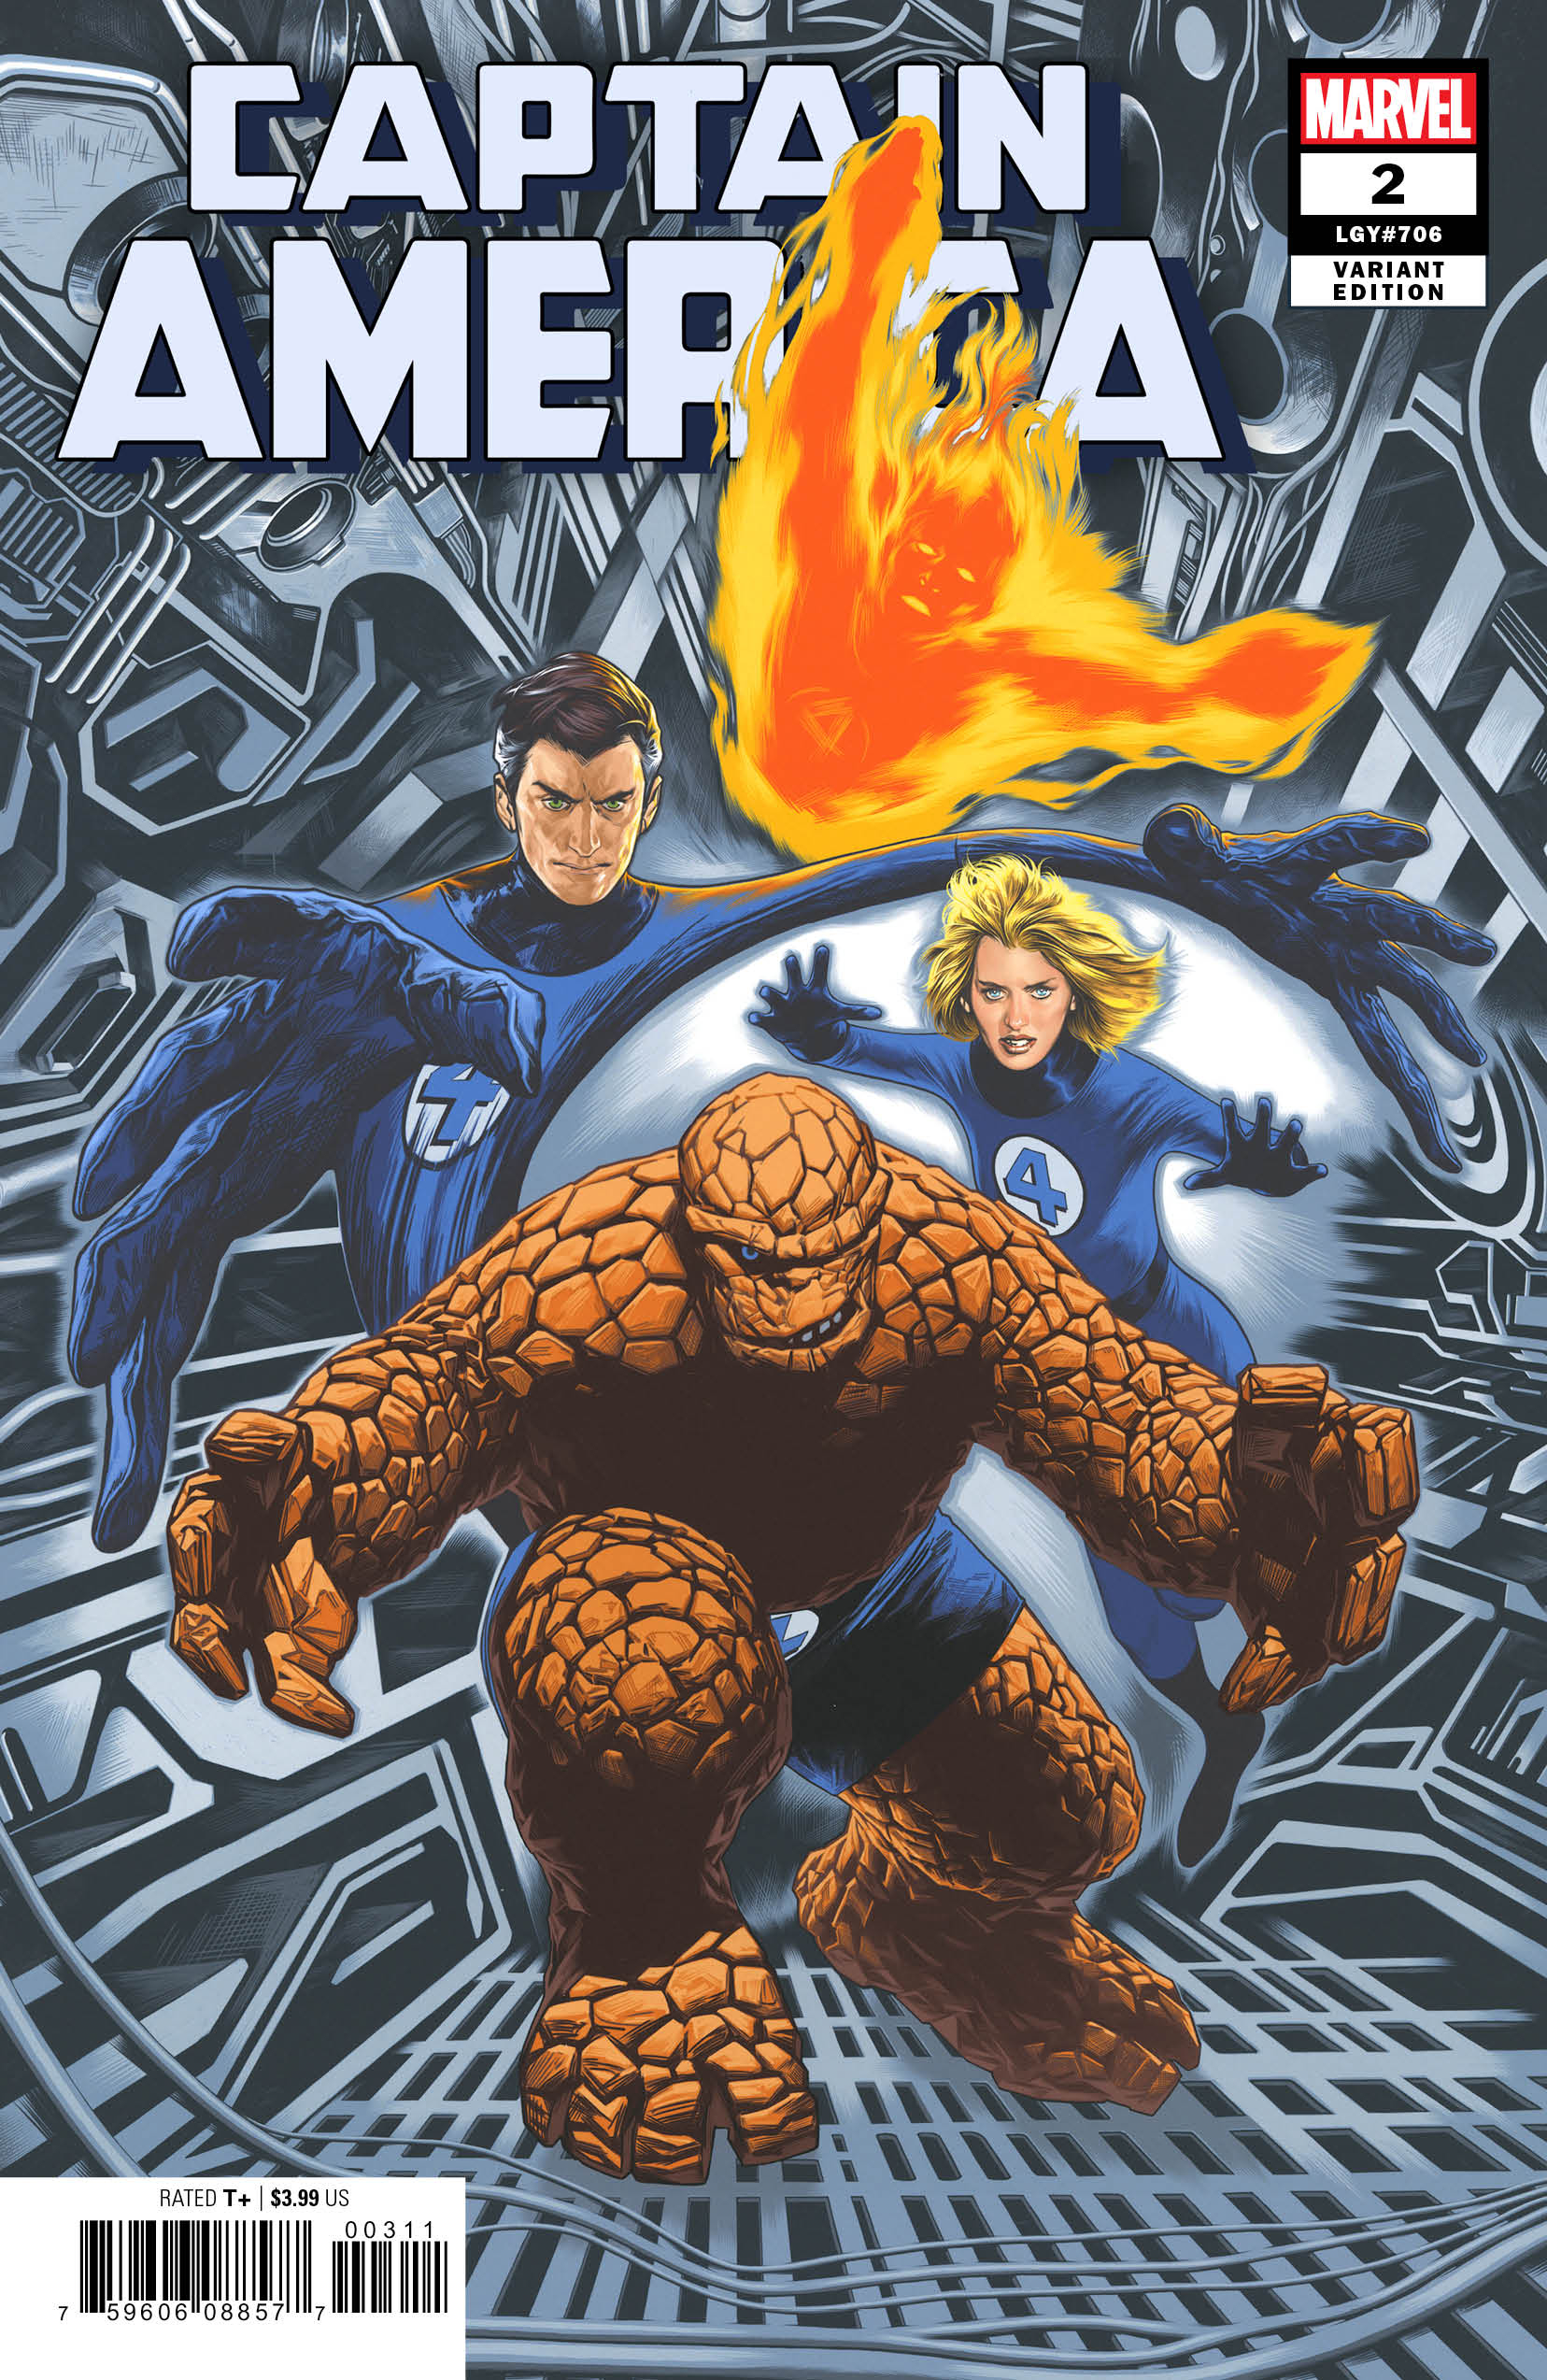 CAPTAIN AMERICA #2 CHAREST RETURN OF FANTASTIC FOUR VAR